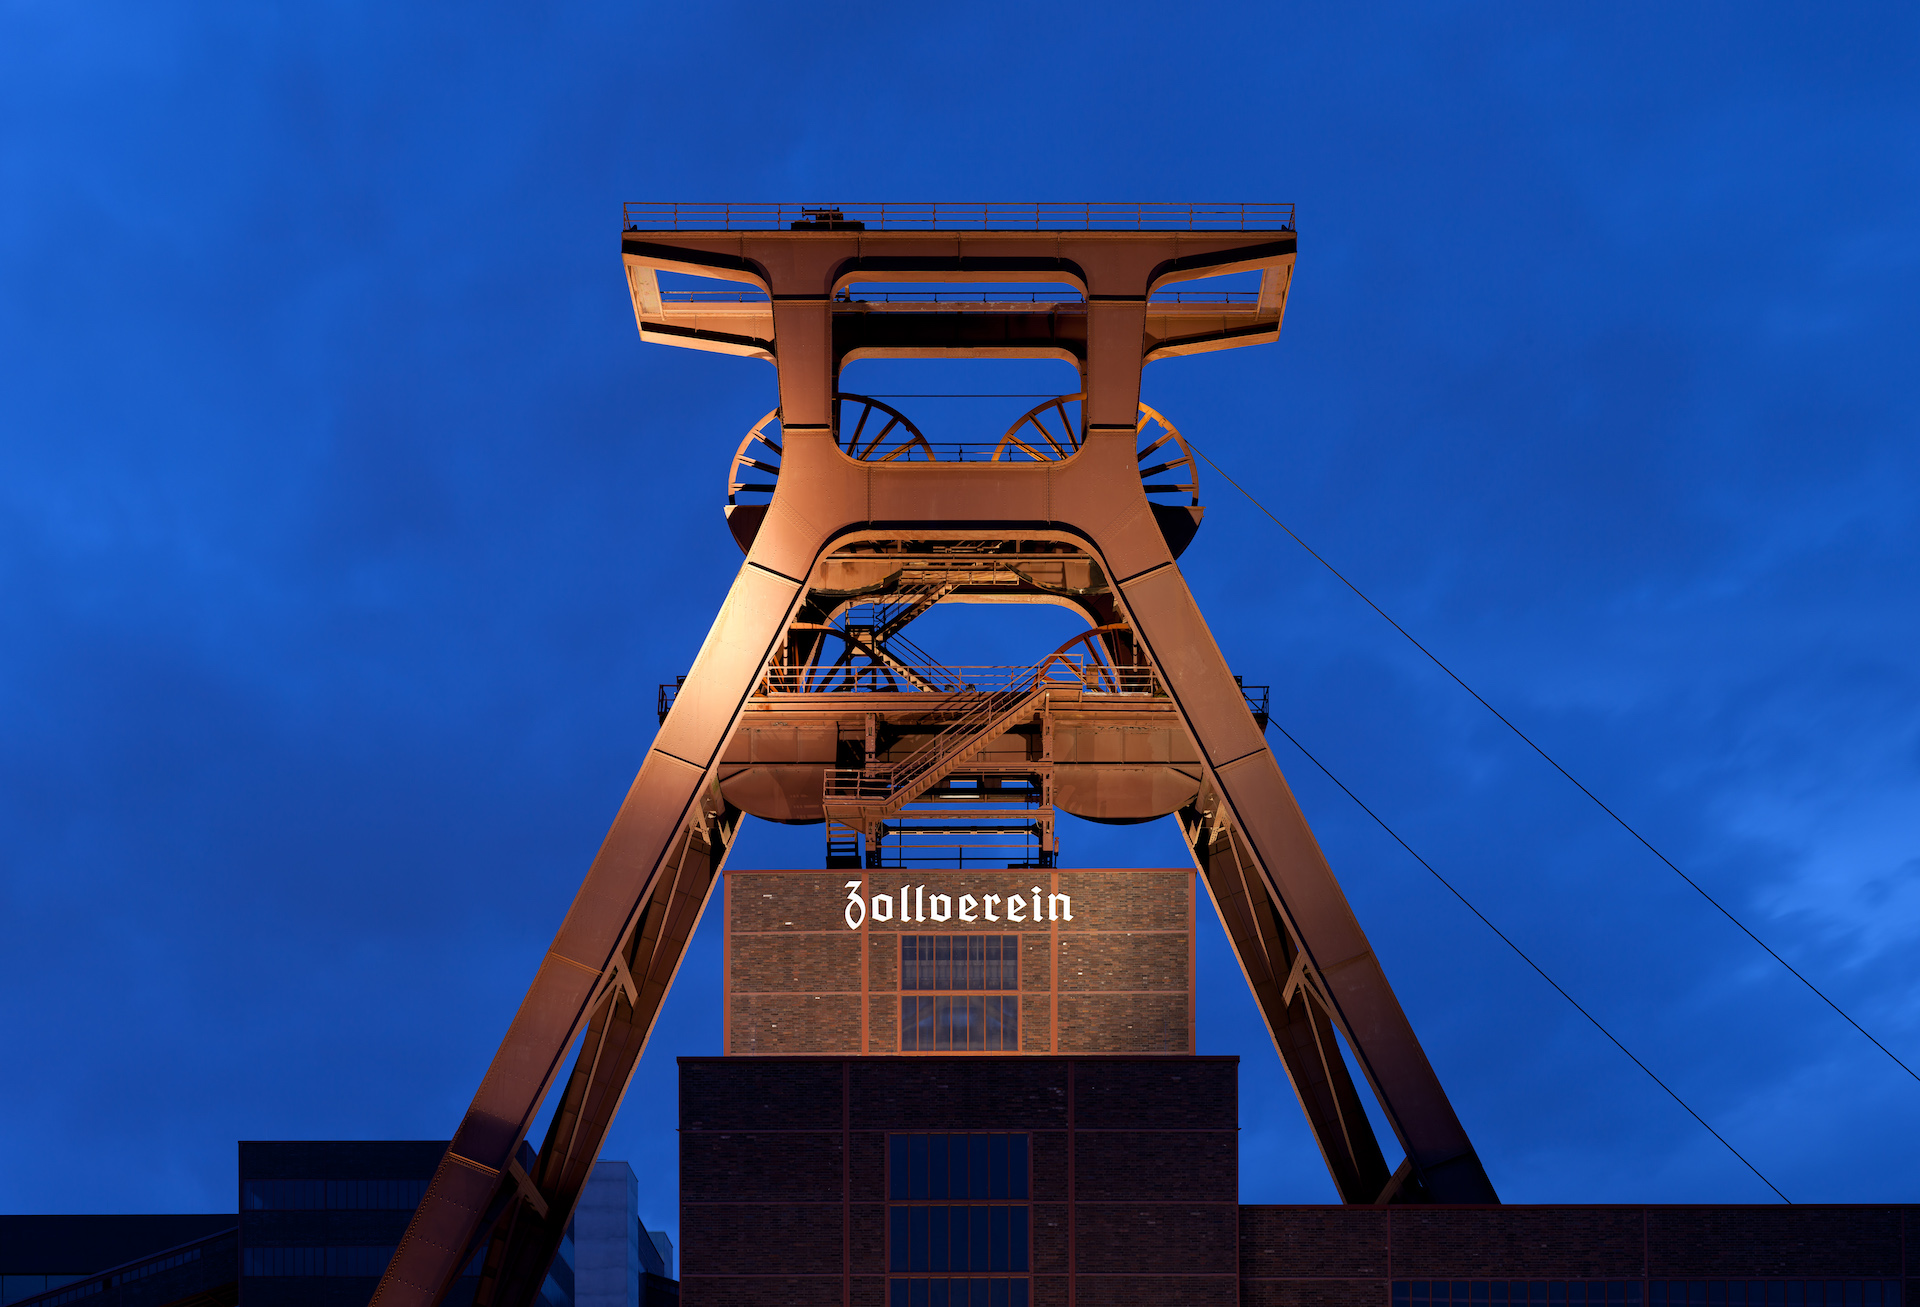 The coal museum in Bochum, Germany